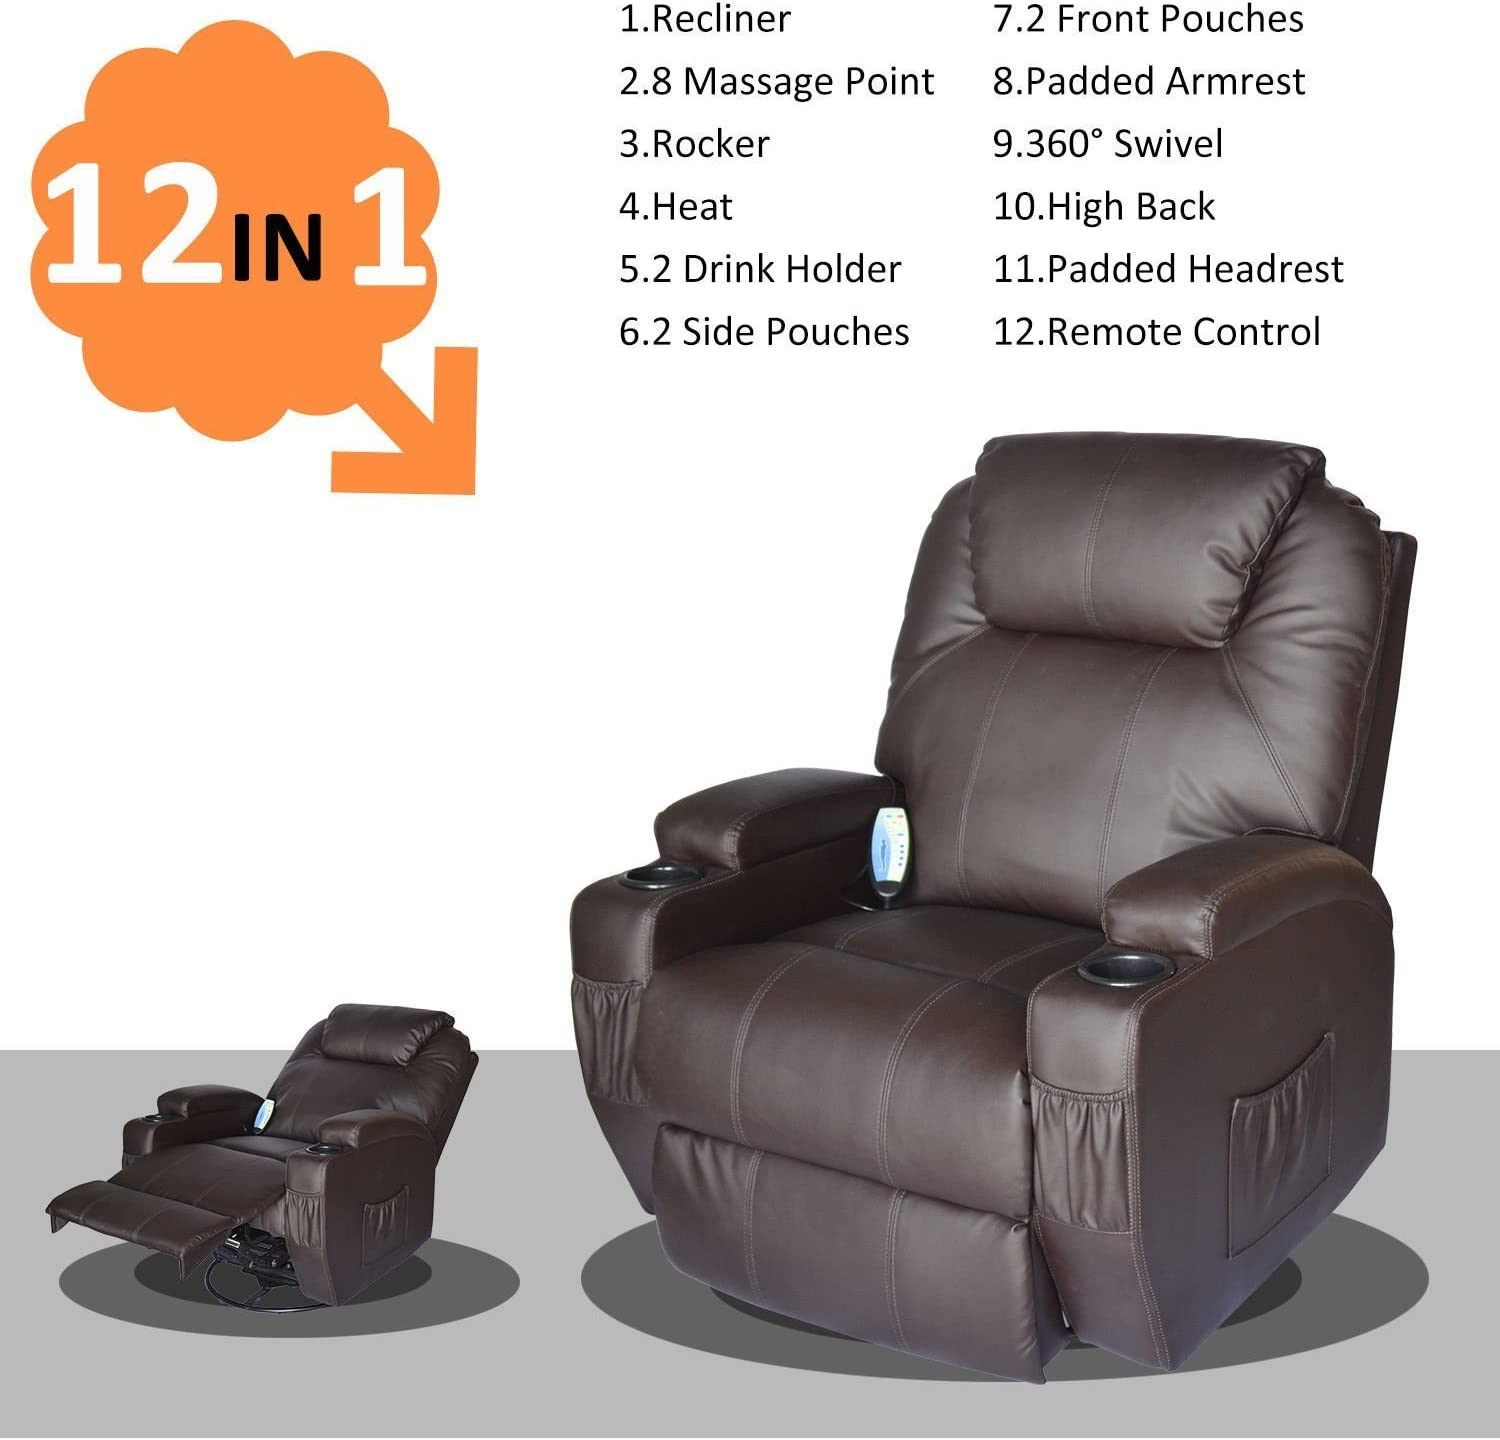 Homcom PU Leather Padded Recliner 12 in mode